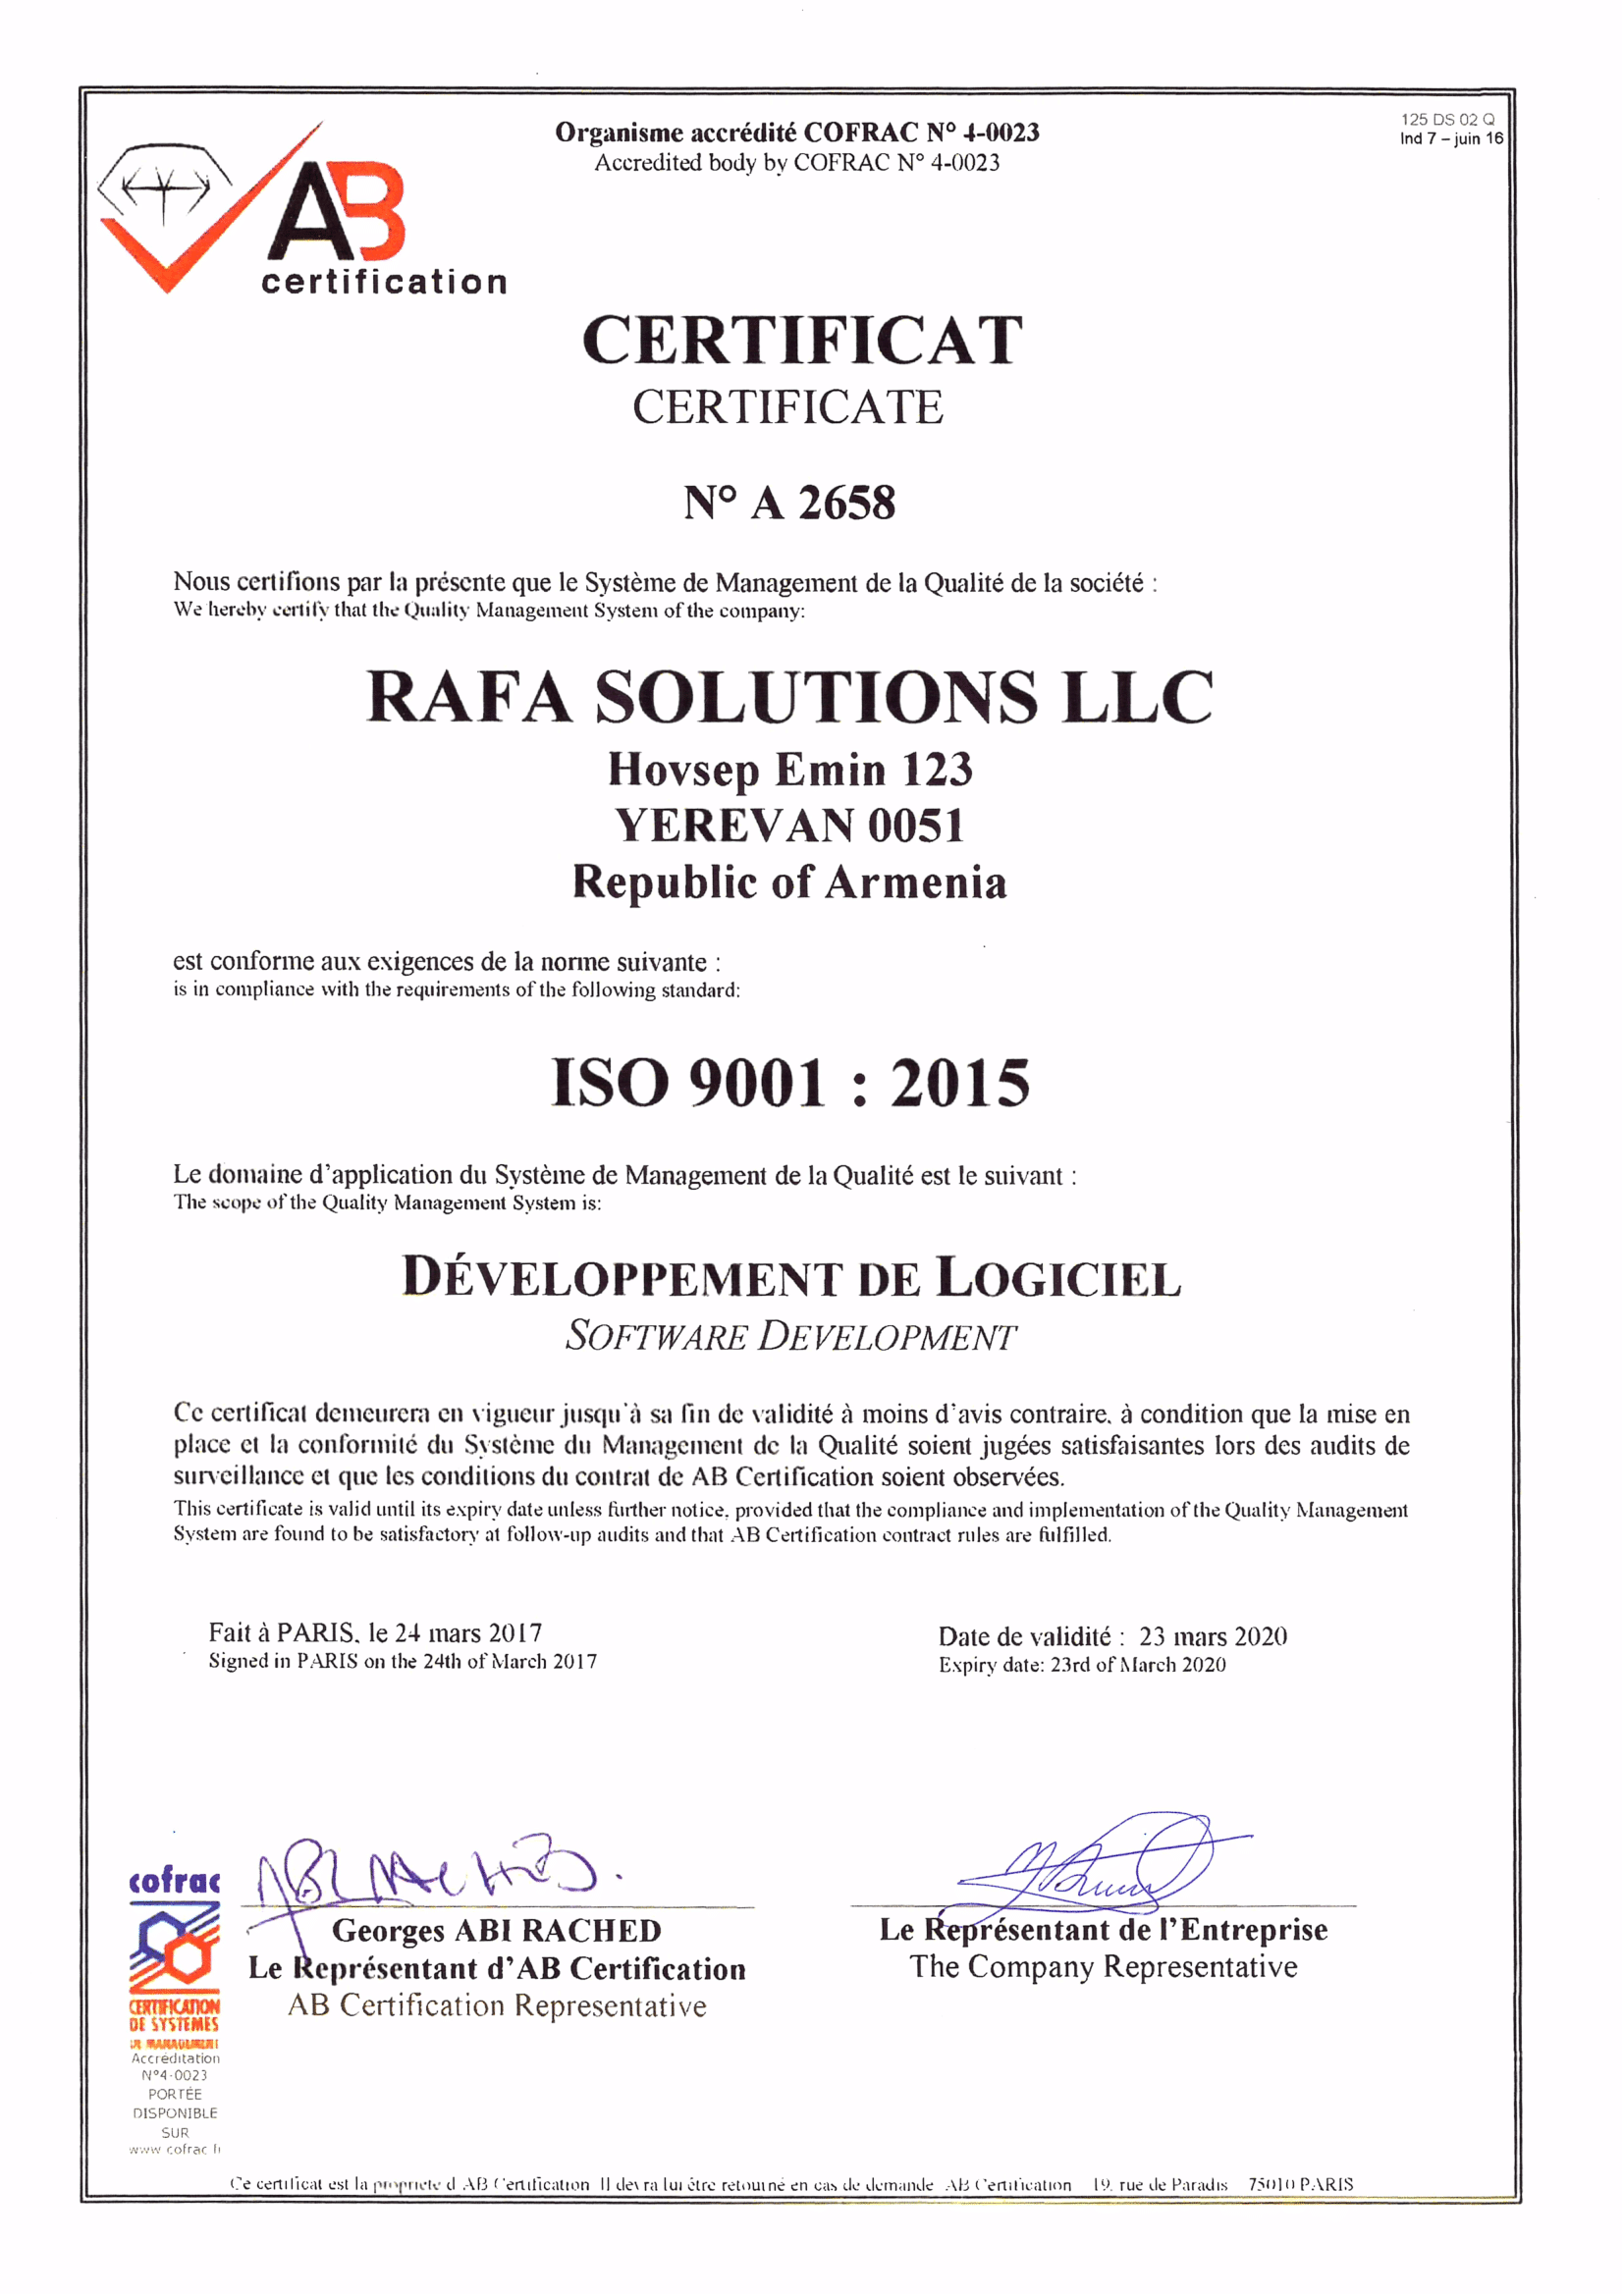 ISO9001_2015_Certificate-1